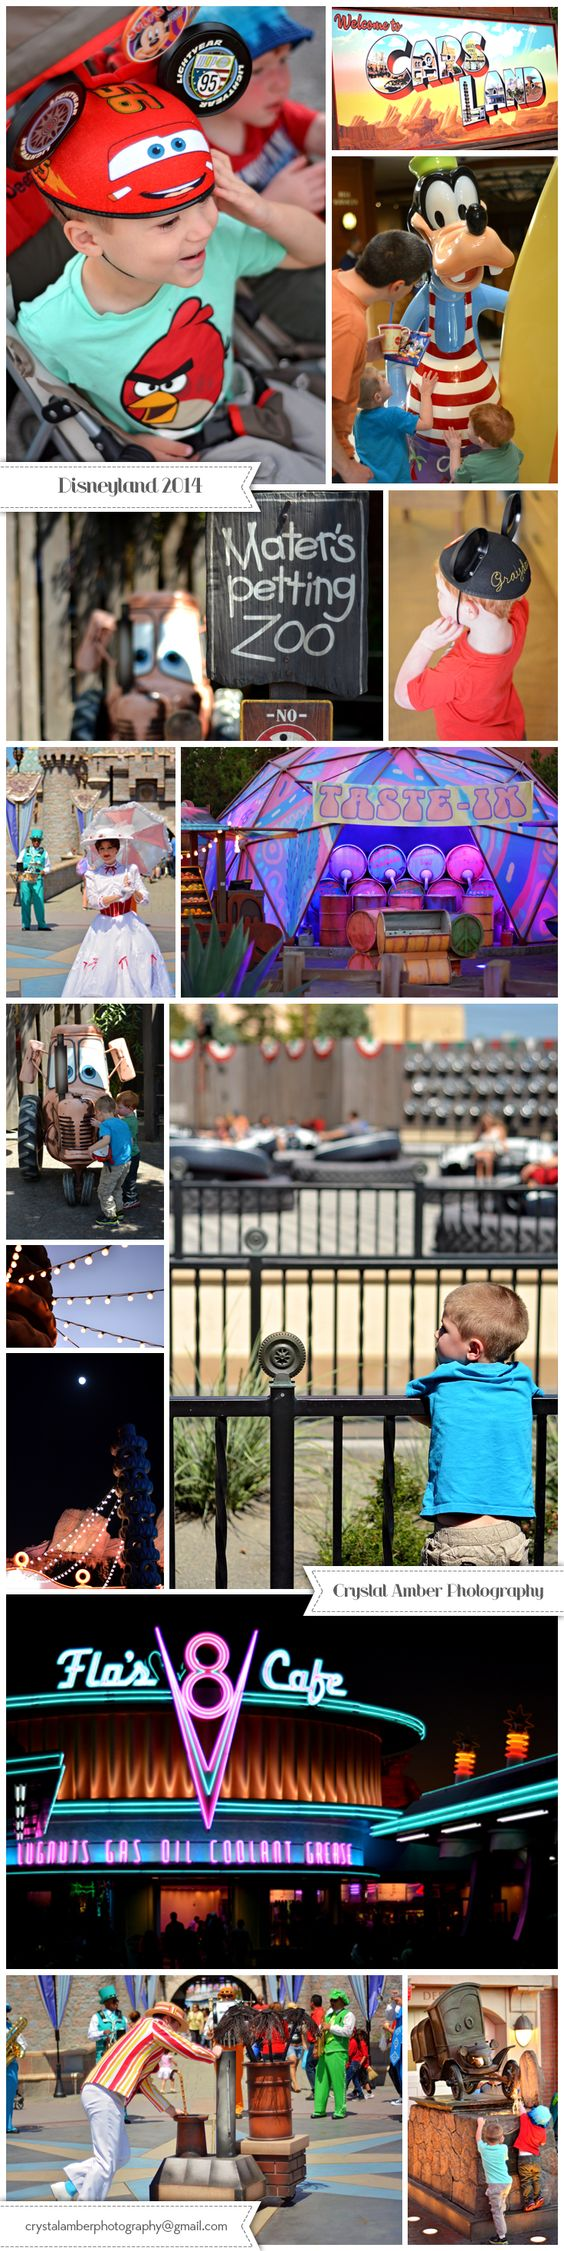 Photographing Disneyland - Lifestyle photography - Anaheim, California - Disneyland was a great backdrop for capturing photos of these kiddos!